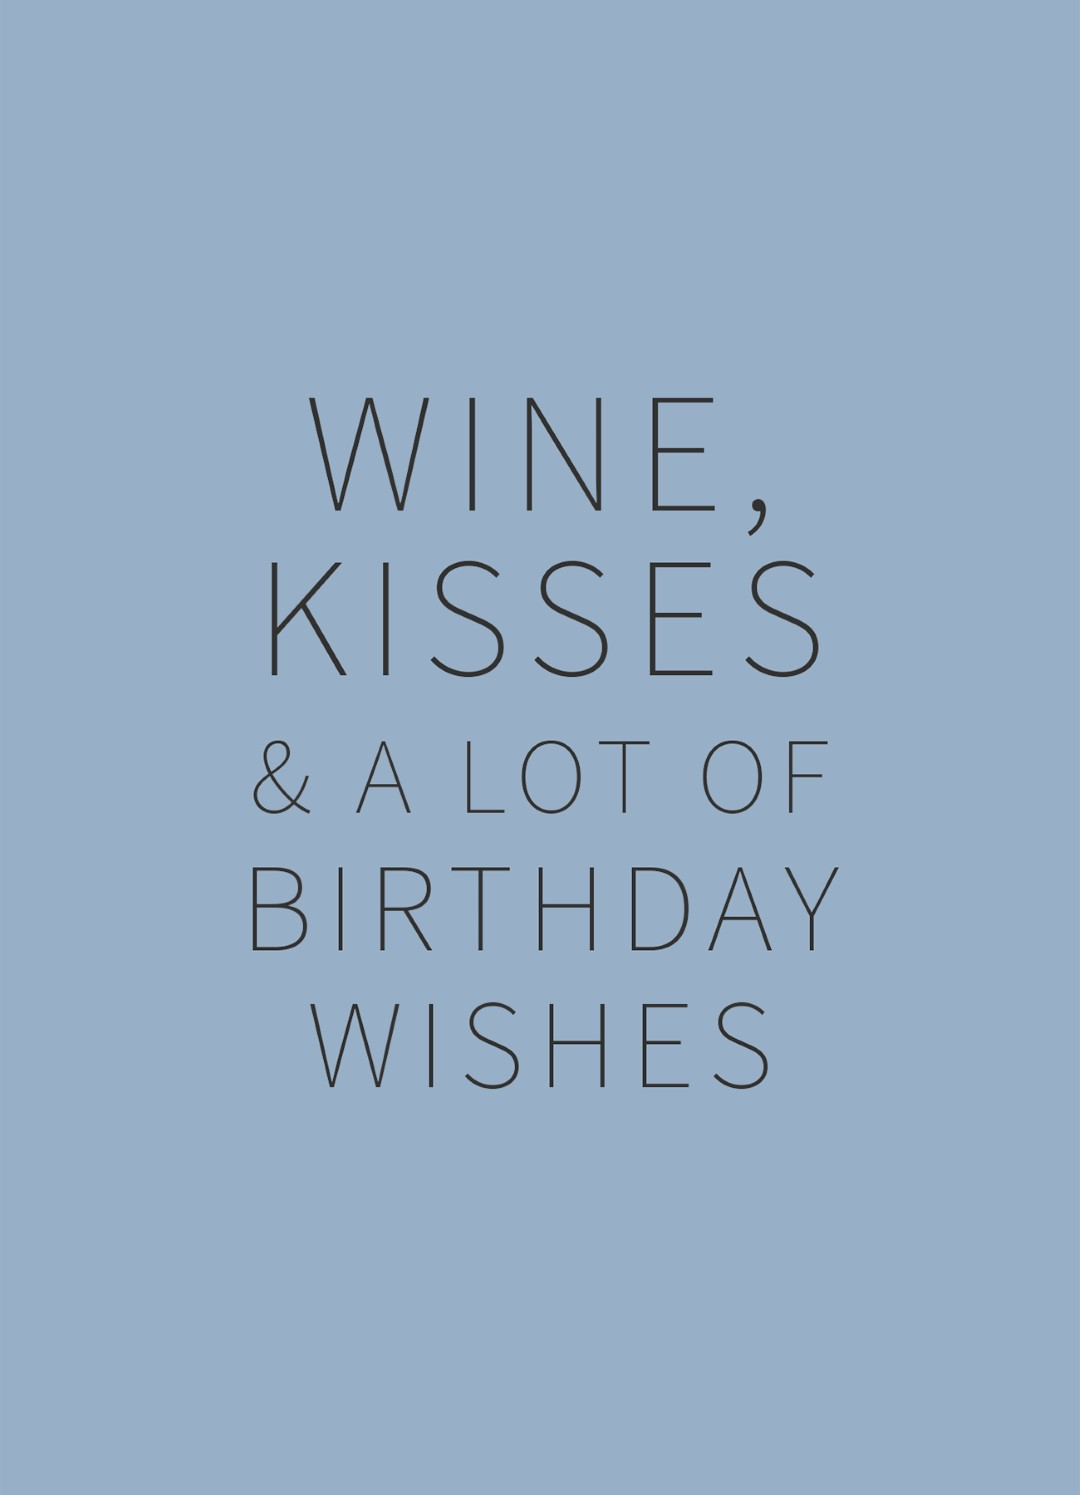 Happy Wine Card wine kisses & a lot of birthday wishes